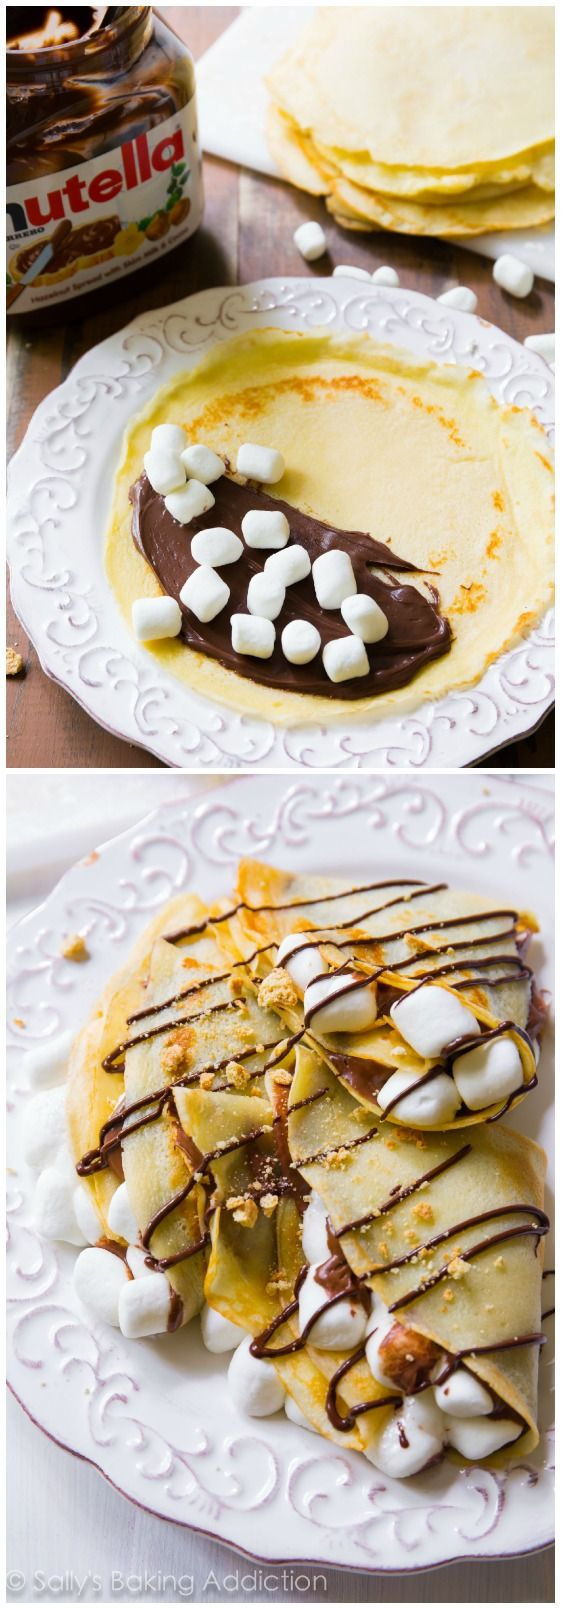 30 Minute S'mores Nutella Crepes - this is my favorite crepe recipe and you won't believe how easy they are!